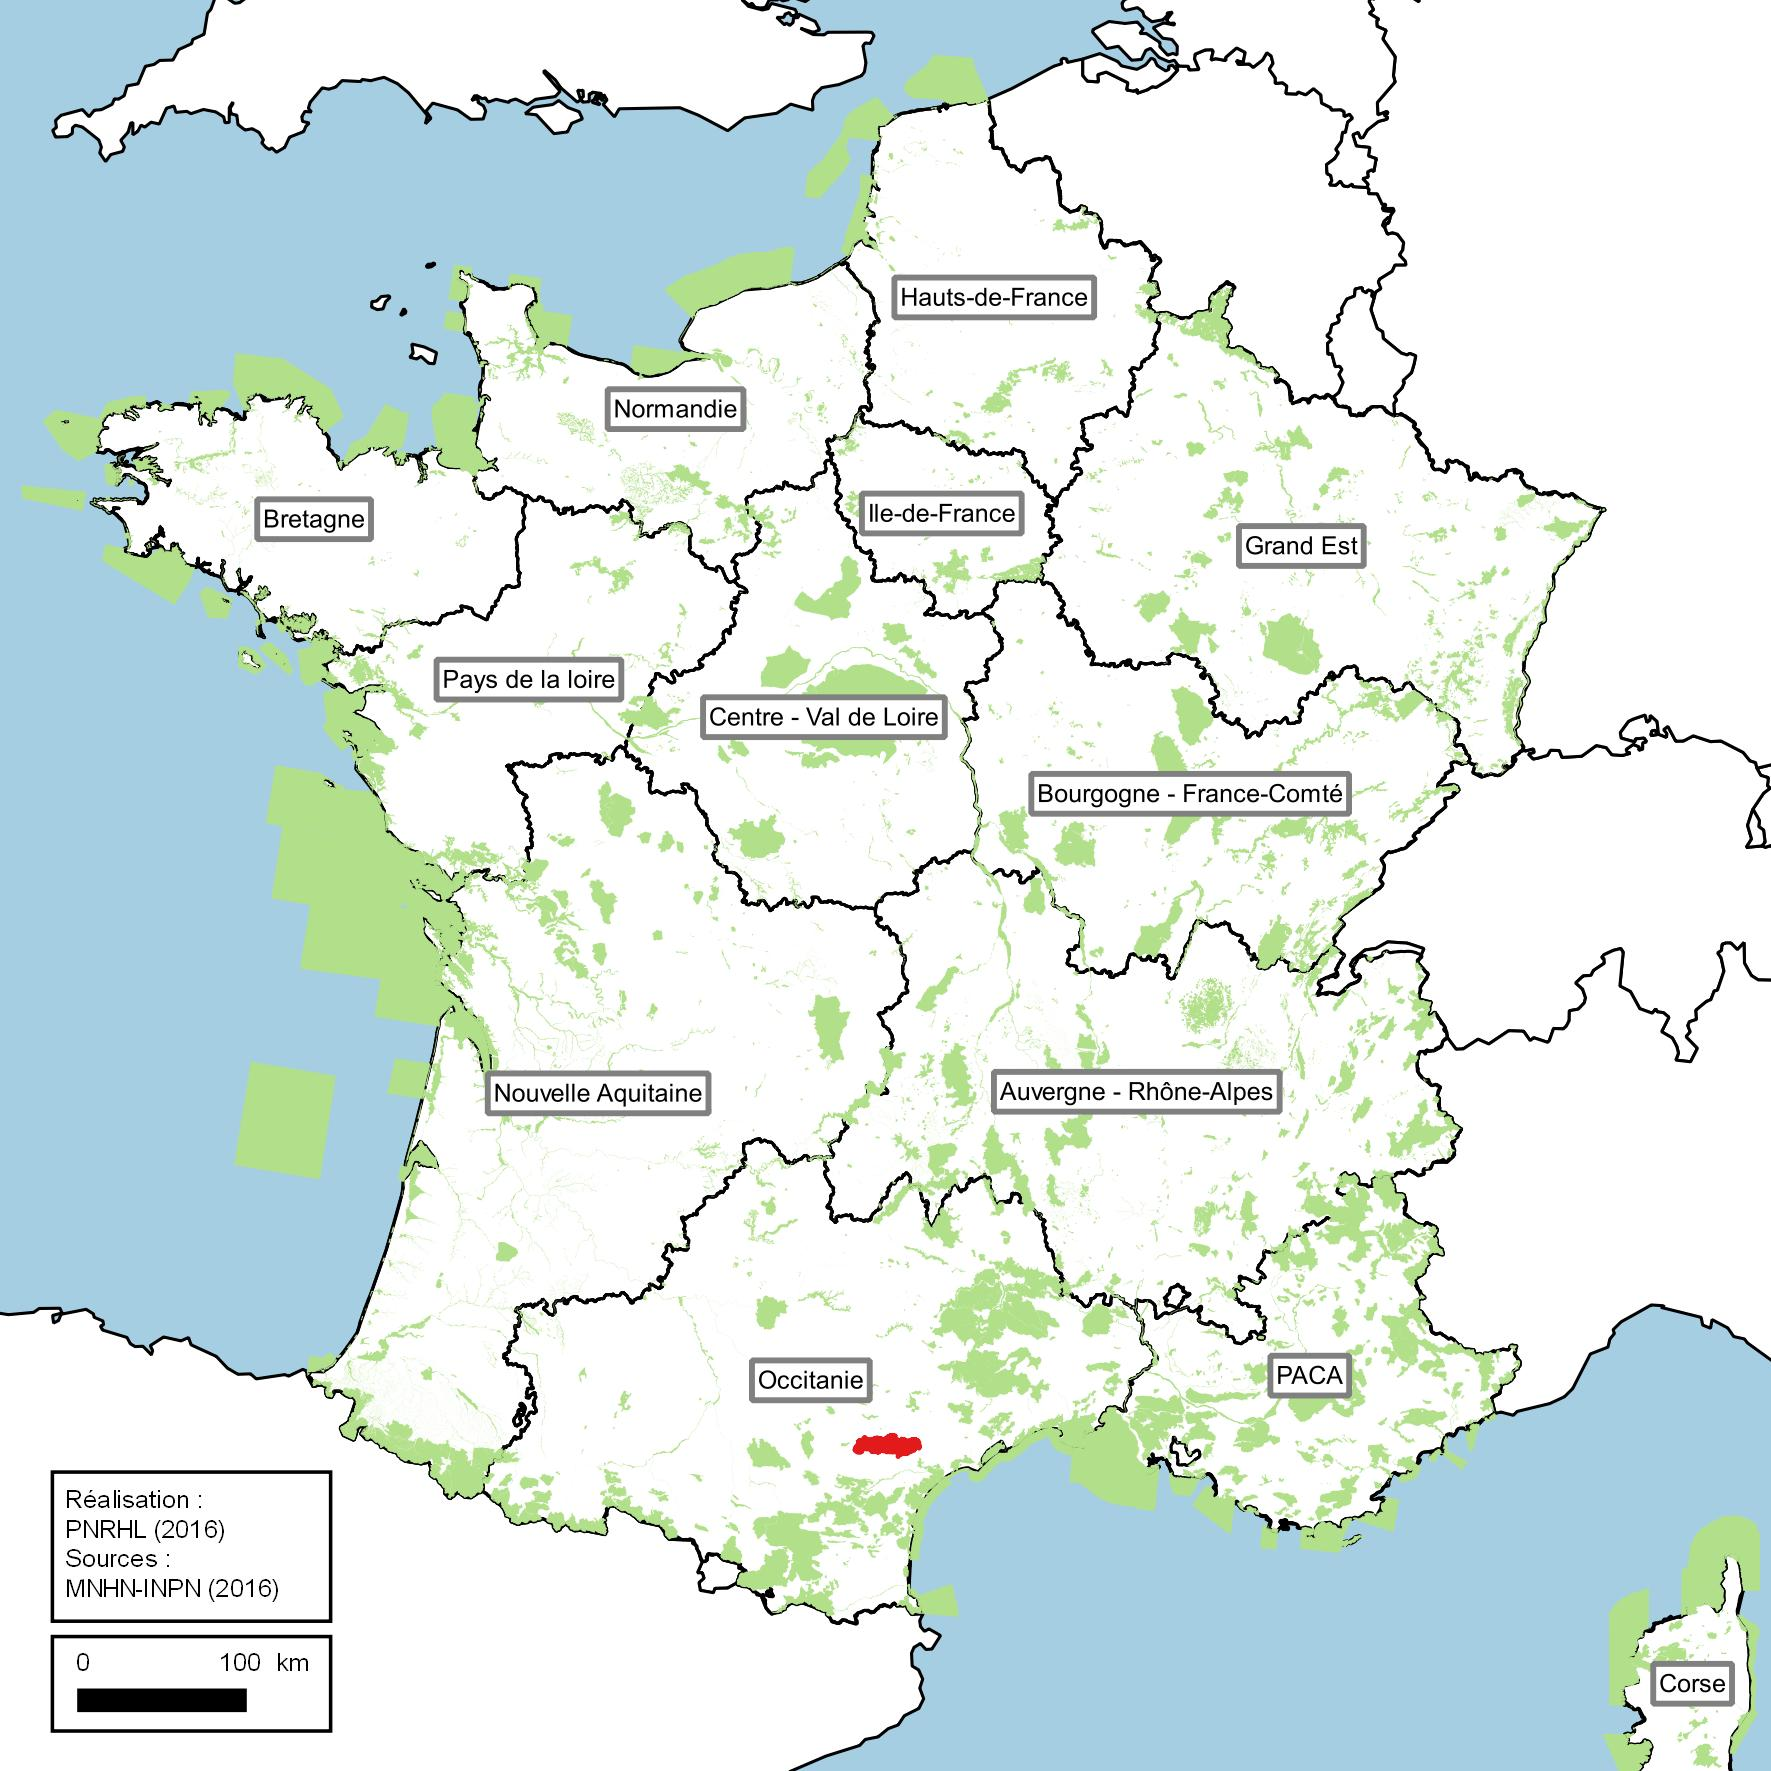 Carte des sites Natura 2000 en France